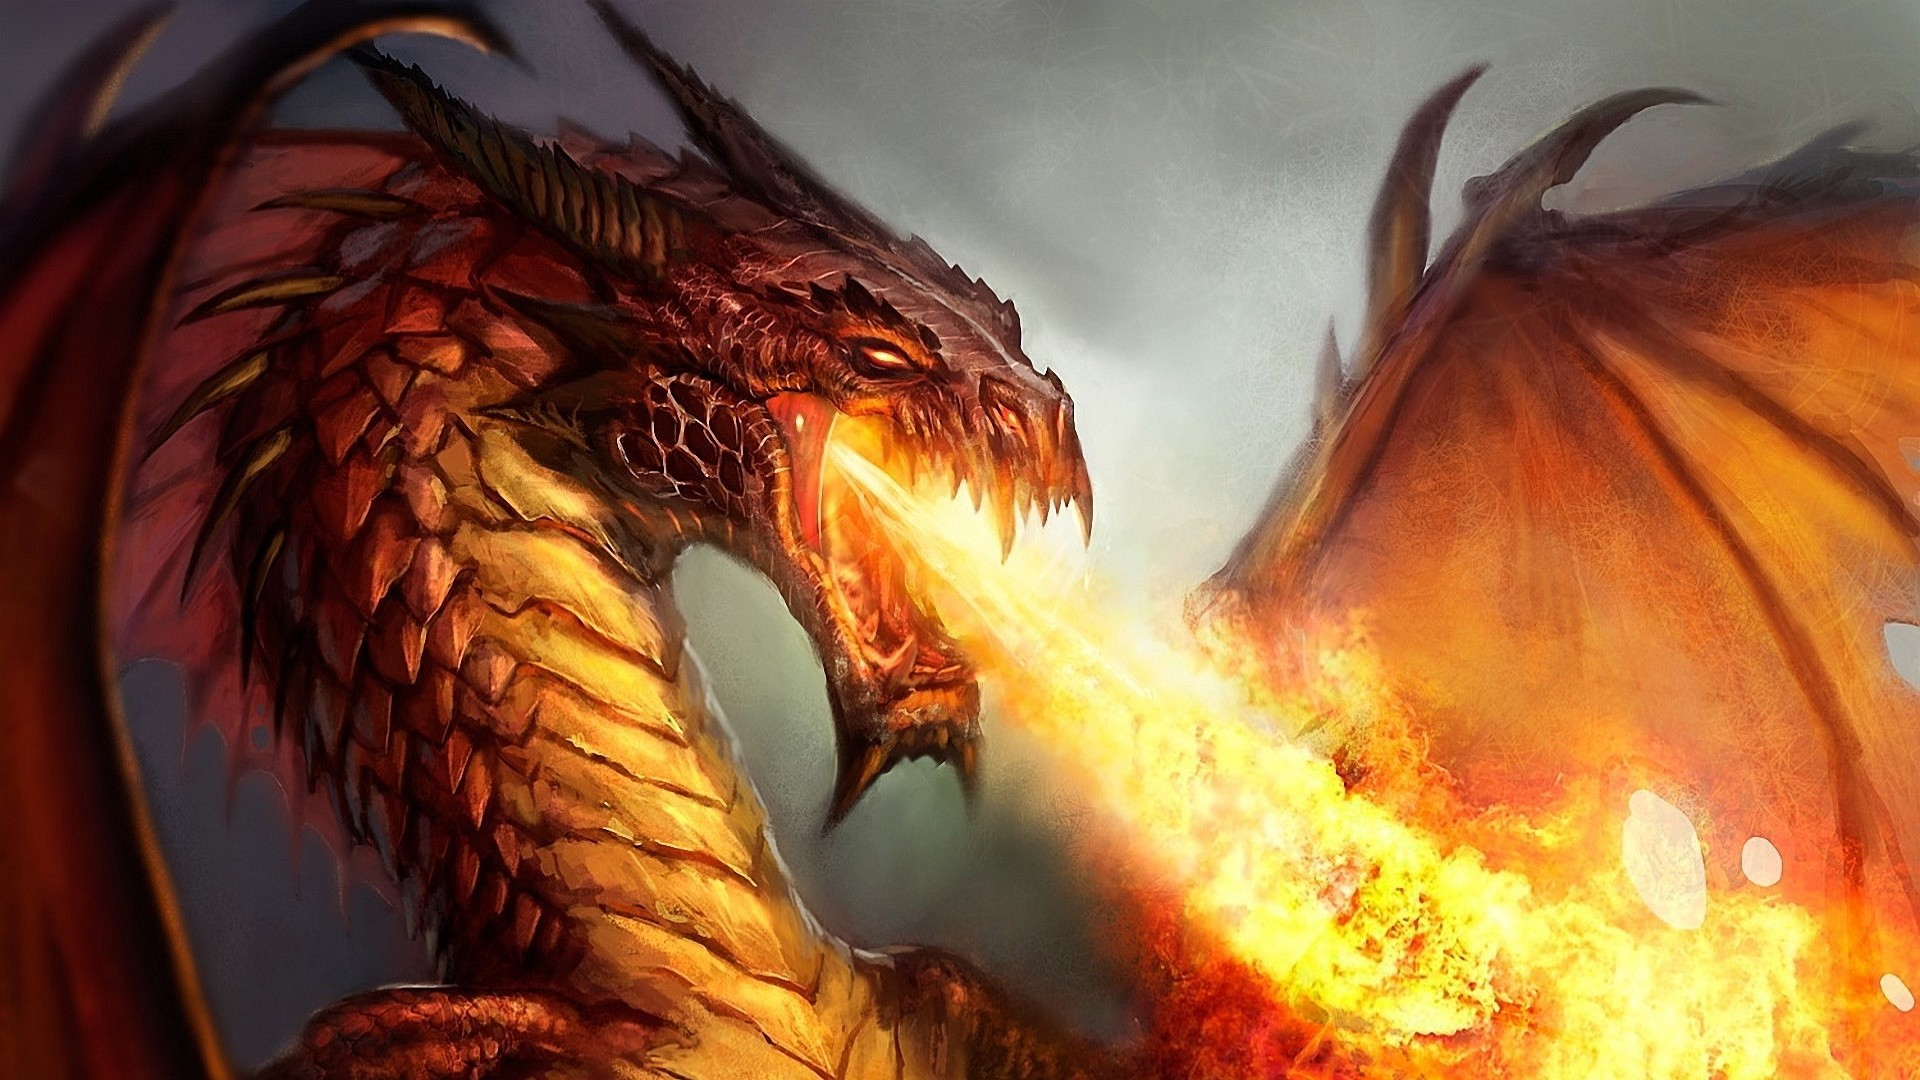 Backgrounds In High Quality: Dragon by Angle Sprowl, 05/03/2015